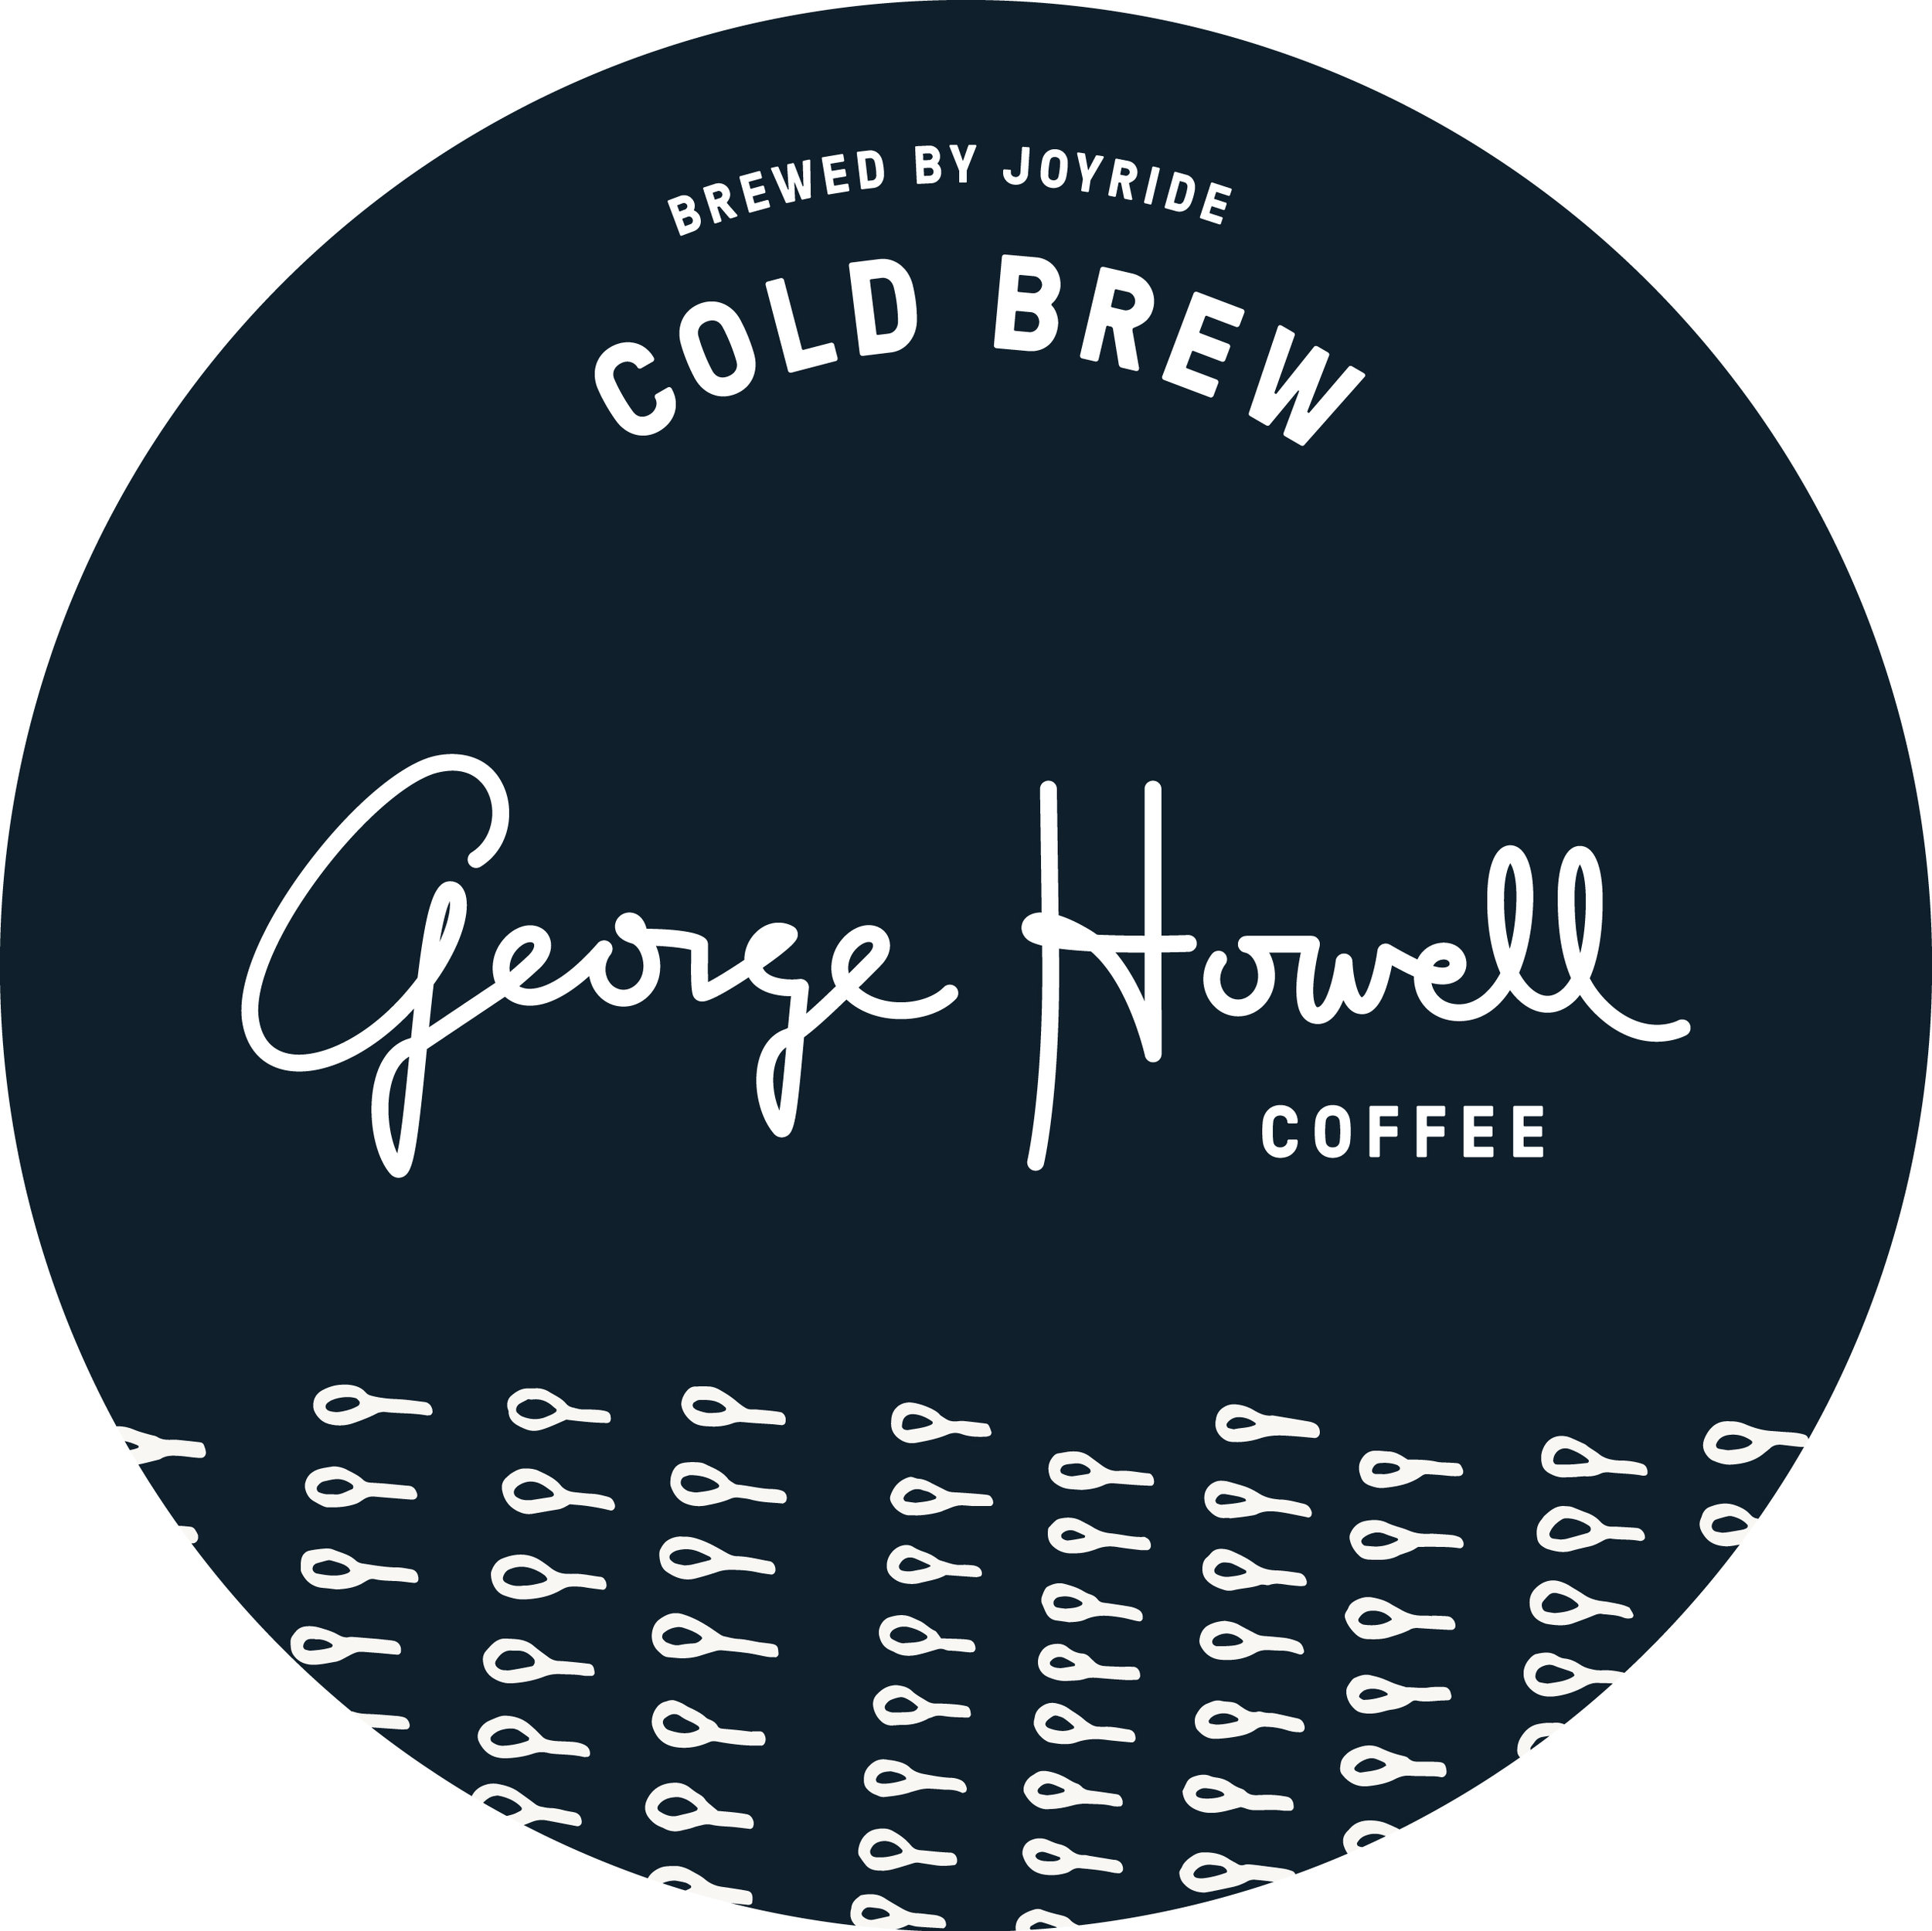 The George Howell Cold Brew Tap Design